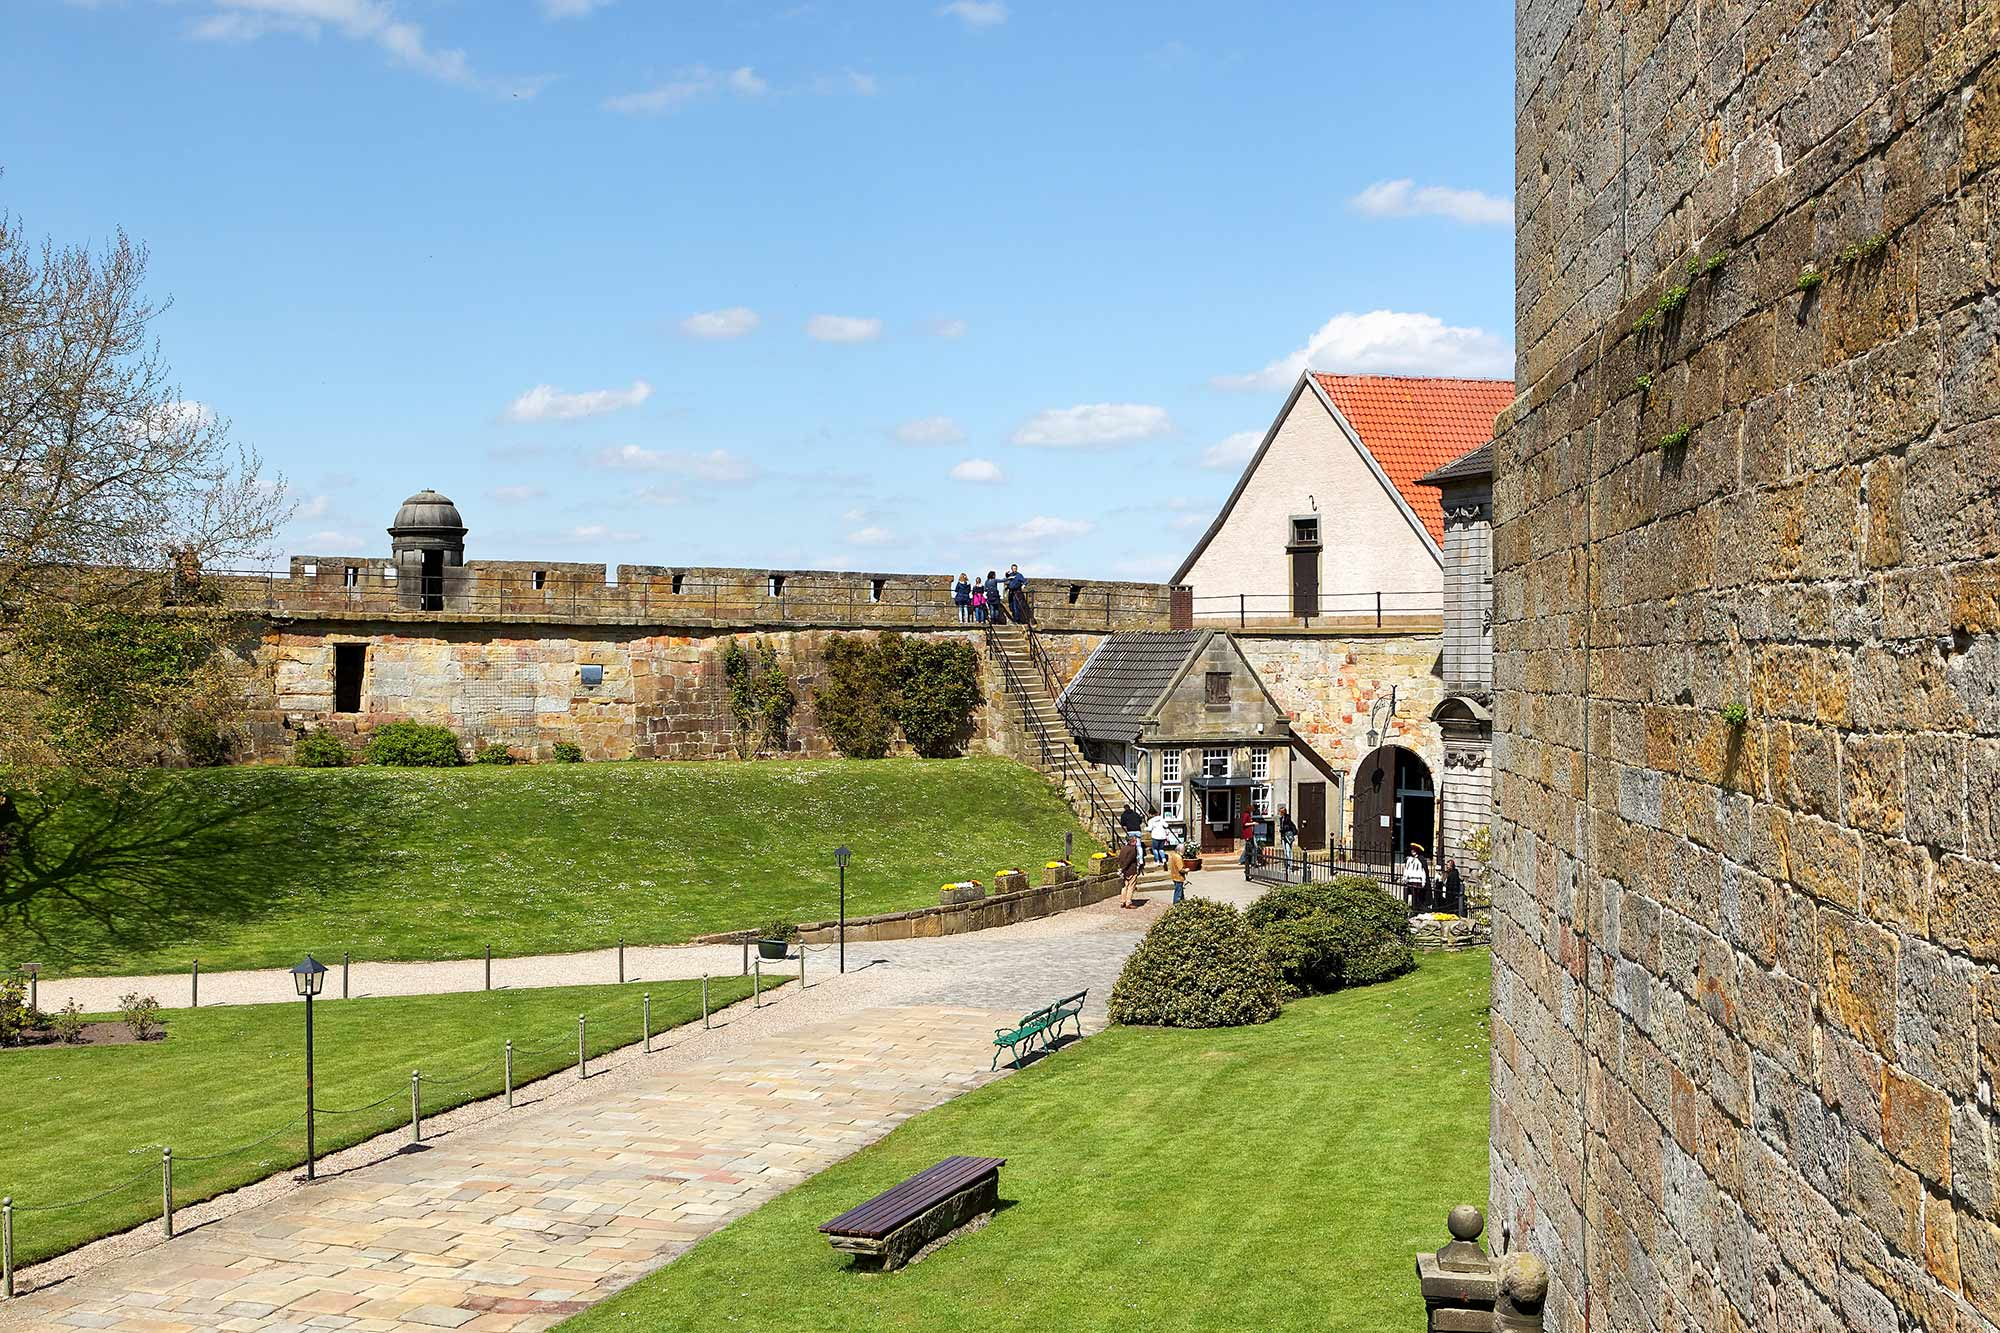 Courtyard and weir of Burg Bentheim © Andreas Richter